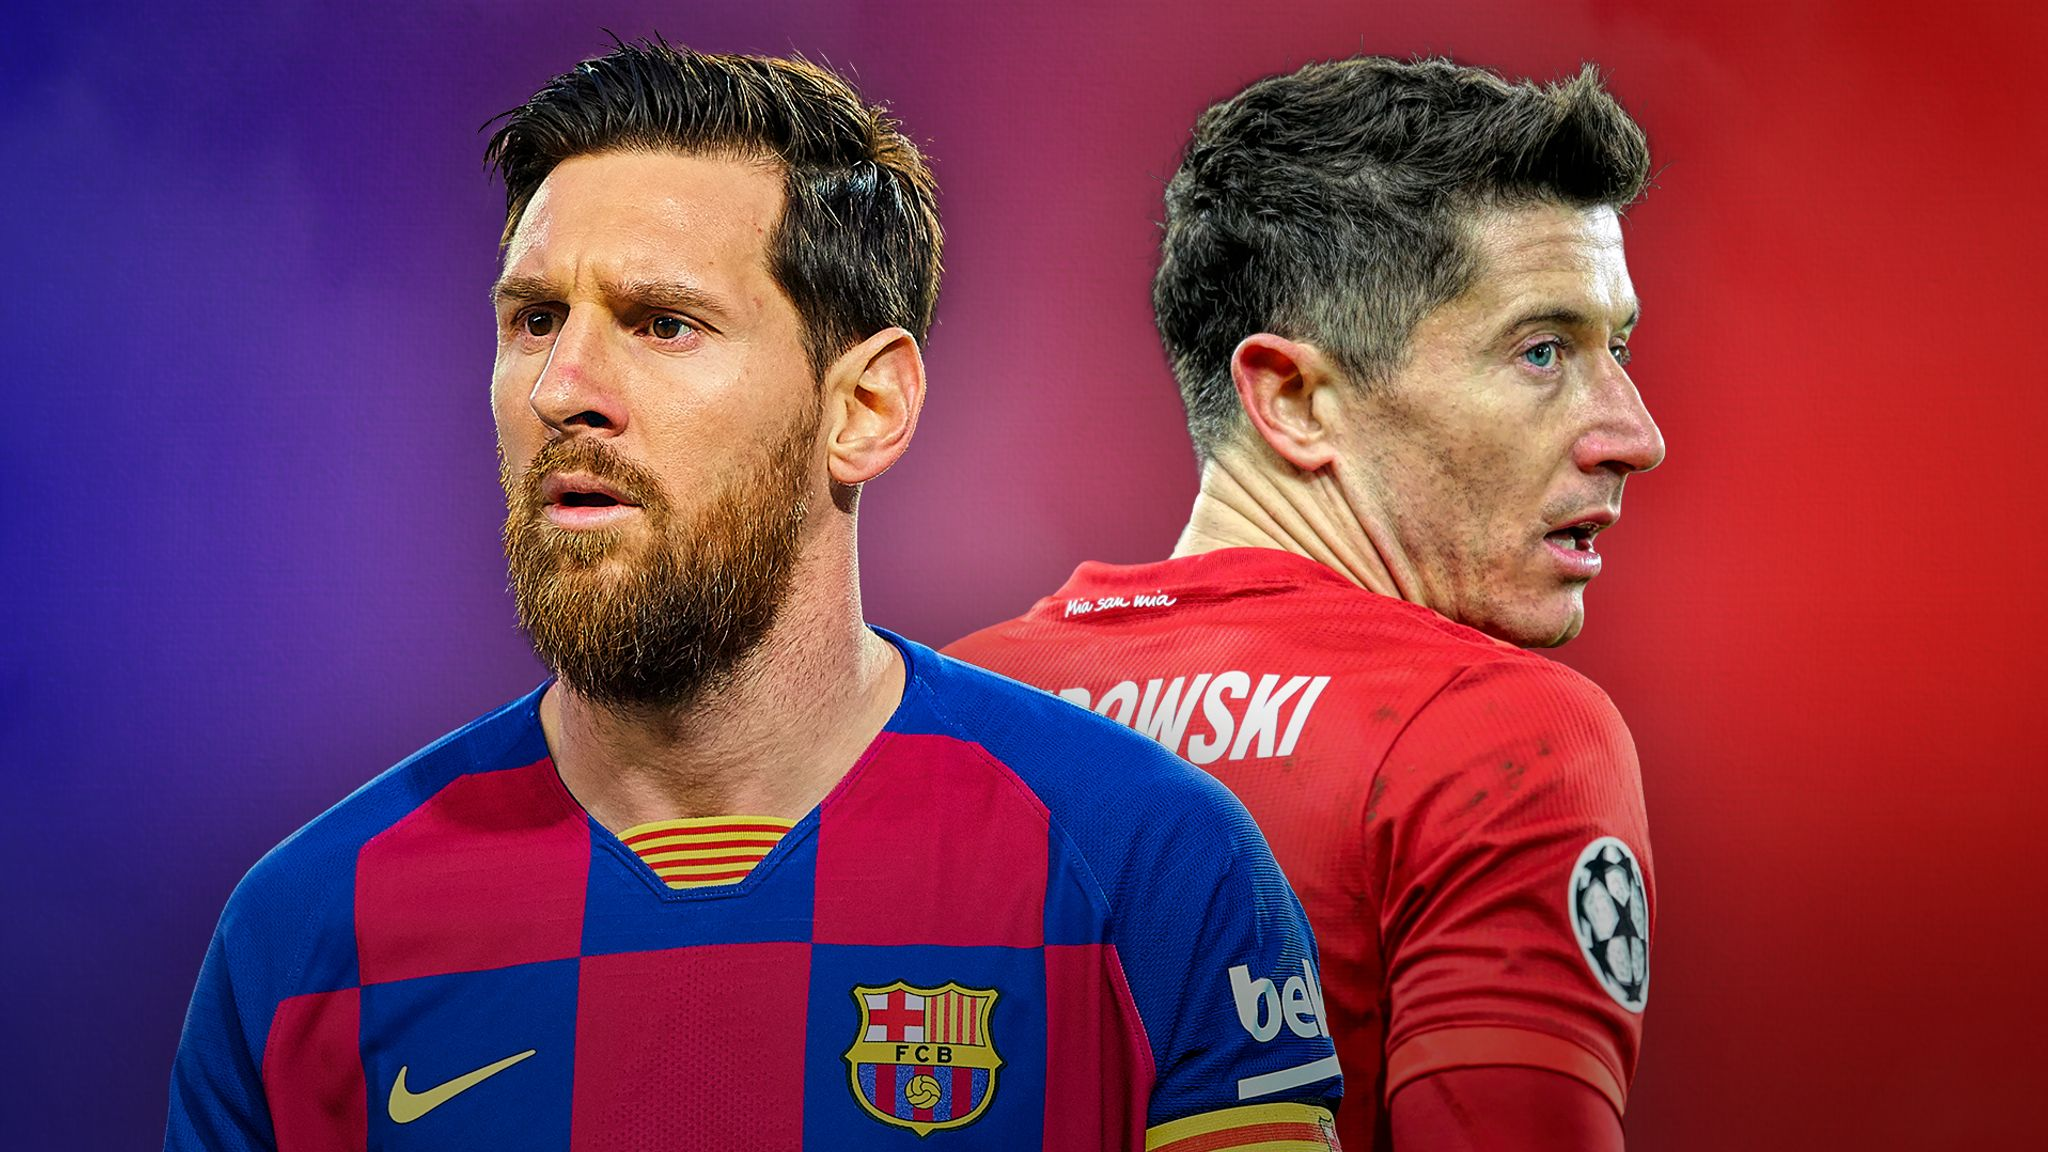 Barcelona V Bayern Munich Lionel Messi And Robert Lewandowski Face Off In Mouth Watering Champions League Quarter Final Football News Sky Sports